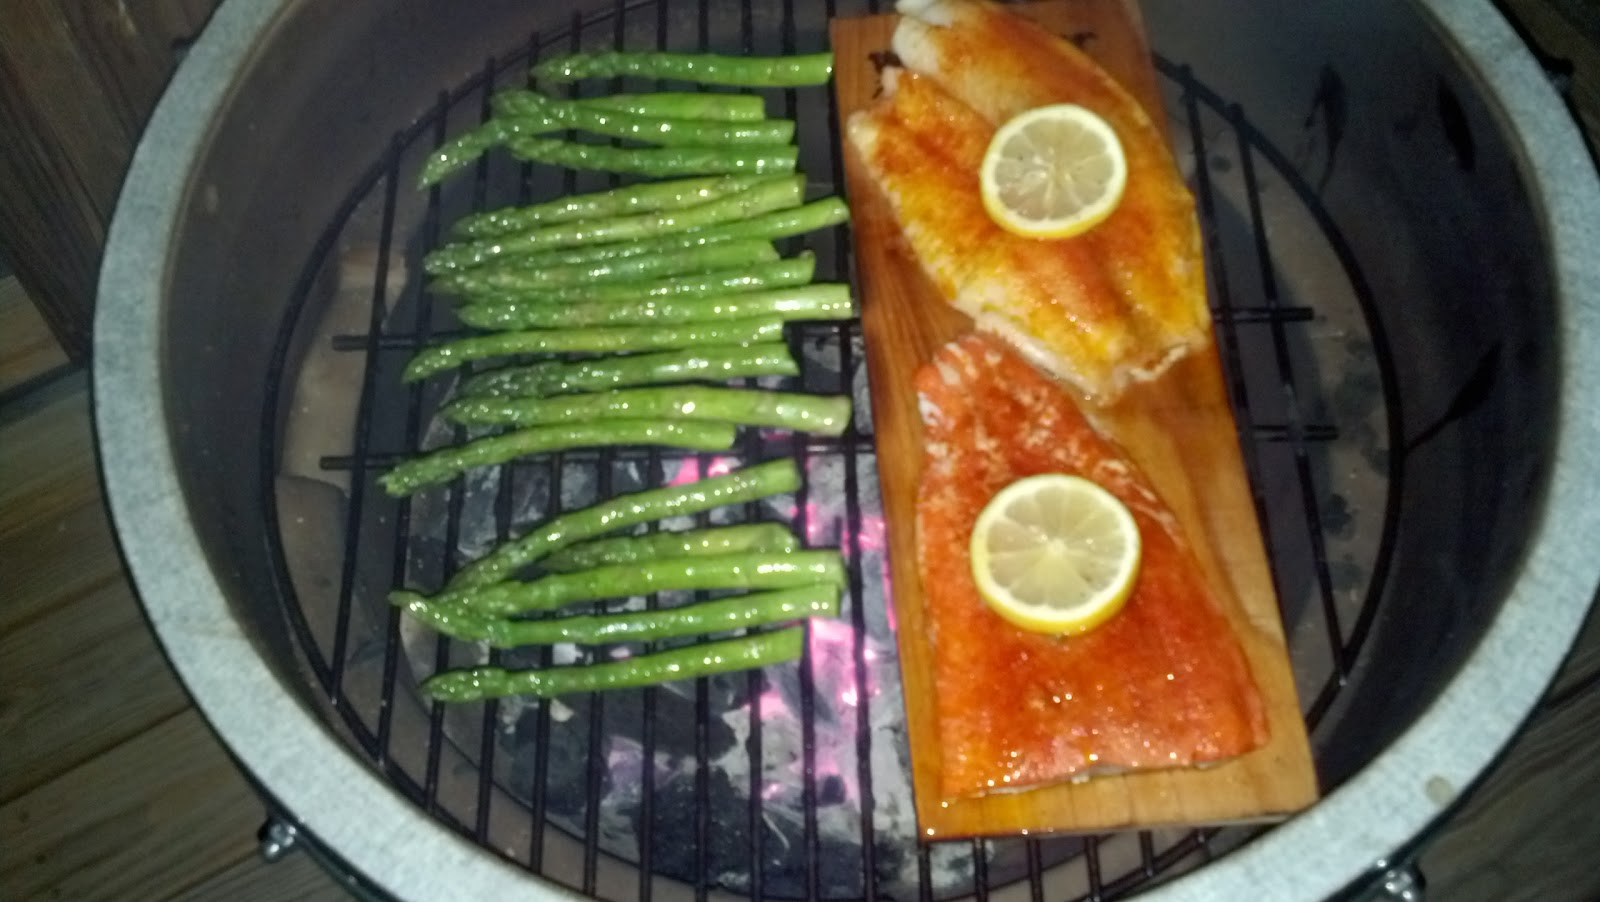 10 Tips for Using a Big Green Egg - Barbecuebible.com